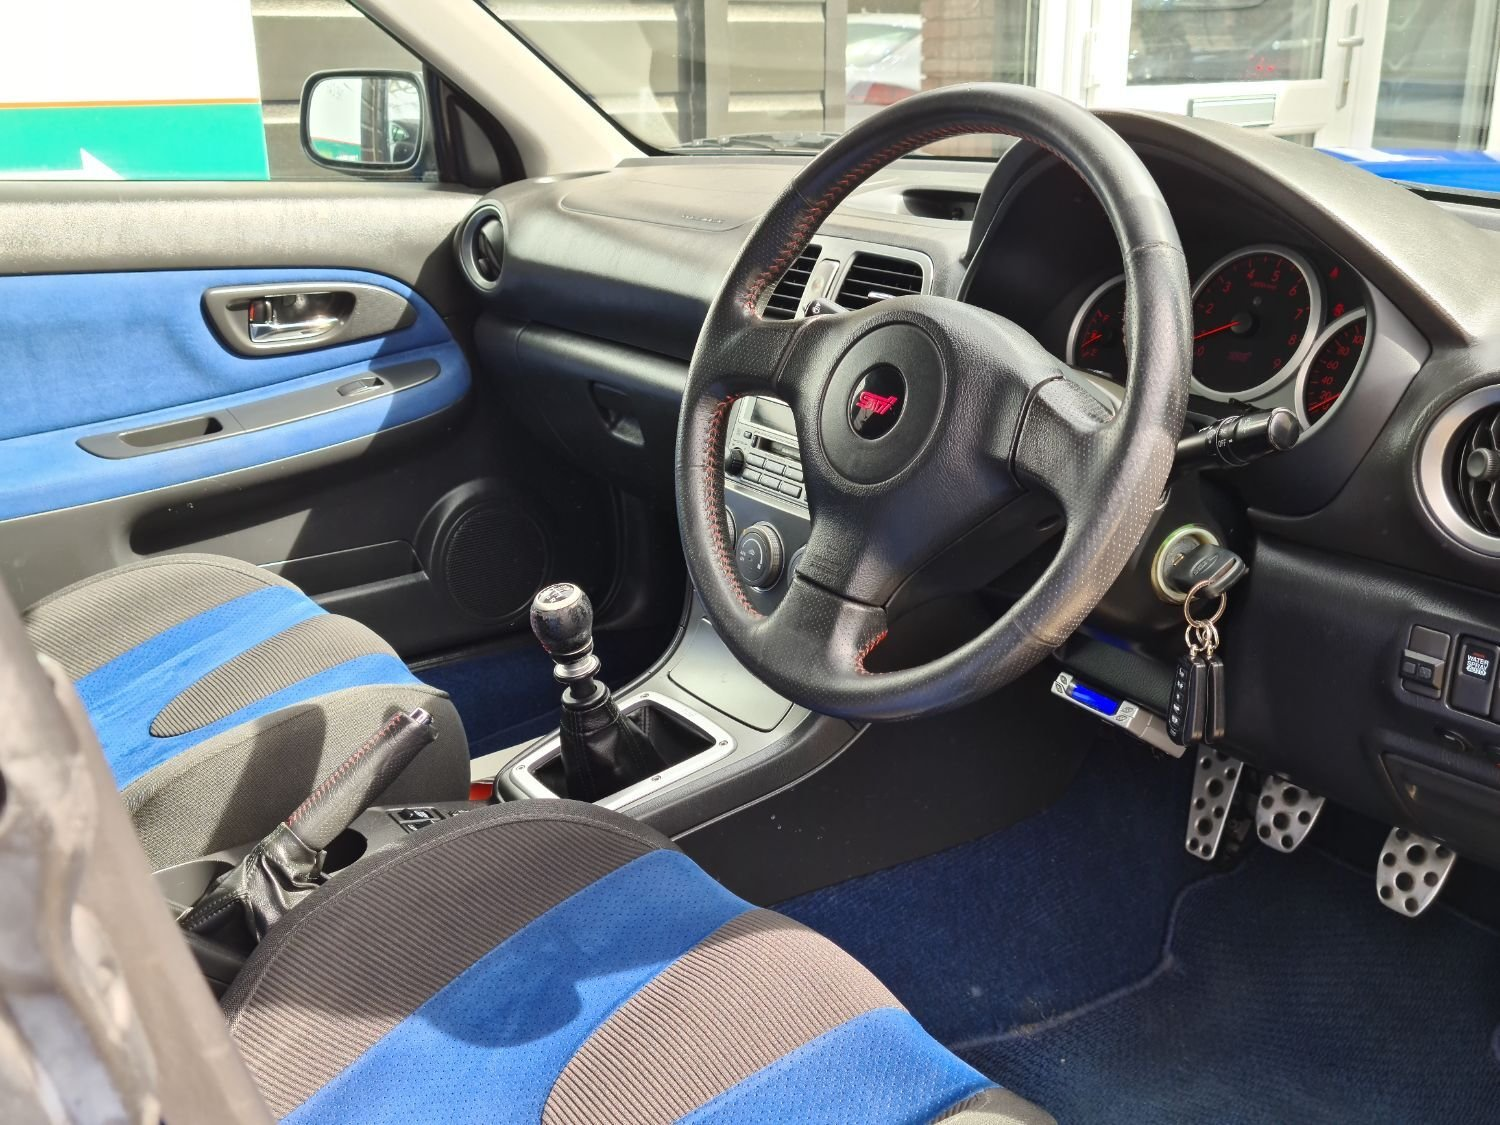 IMPREZA WRX STI (2006/55) Low Tax Band 368 BHP For Sale (picture 6 of 23)